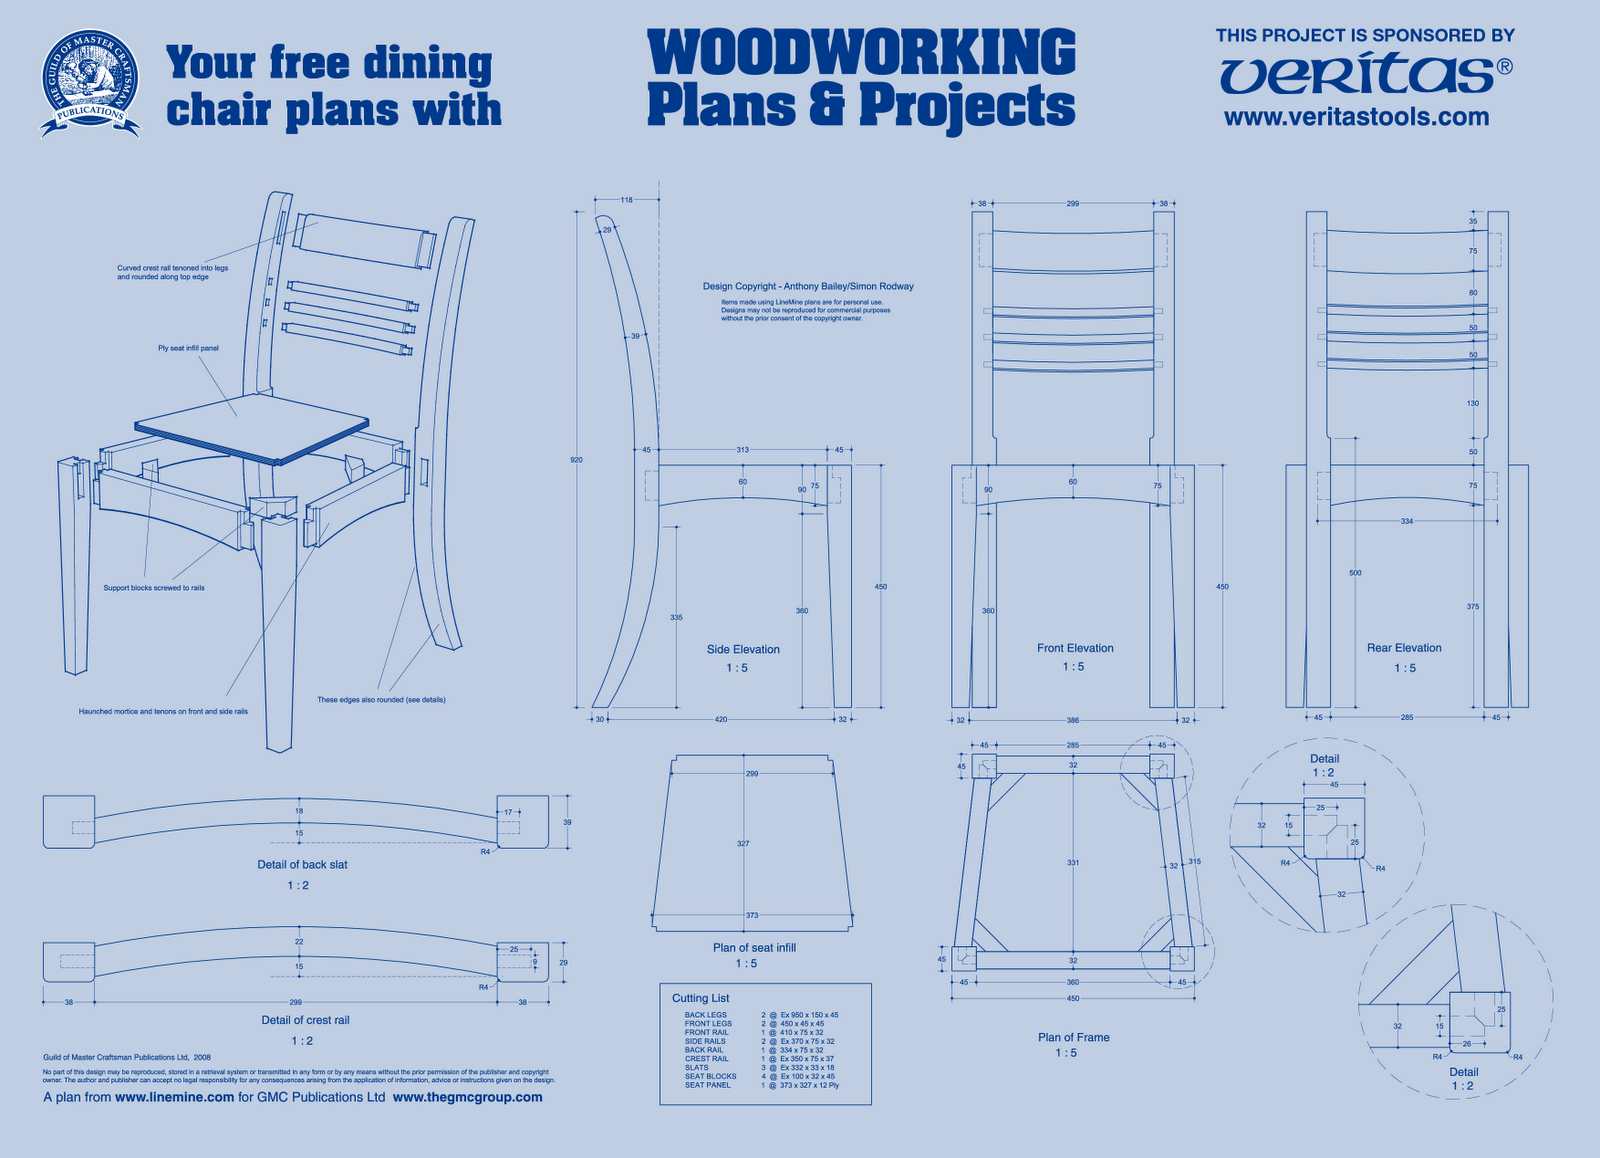 Wood working plans shed plans and more dining chair plan for Free dining chair plans